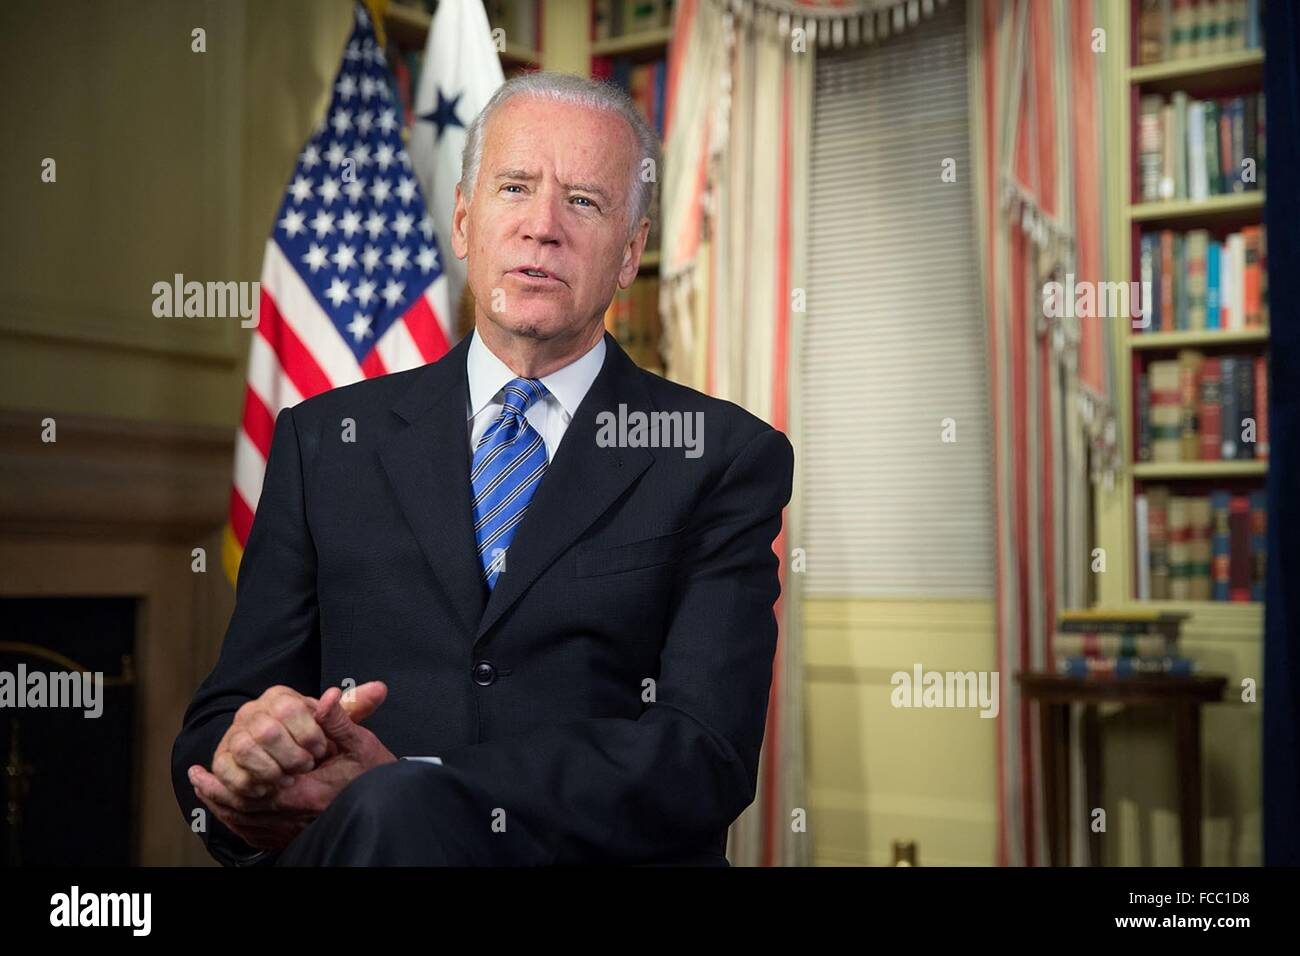 U.S Vice President Joe Biden delivers the weekly radio address on standing against terror November 21, 2015 in Washington, - Stock Image